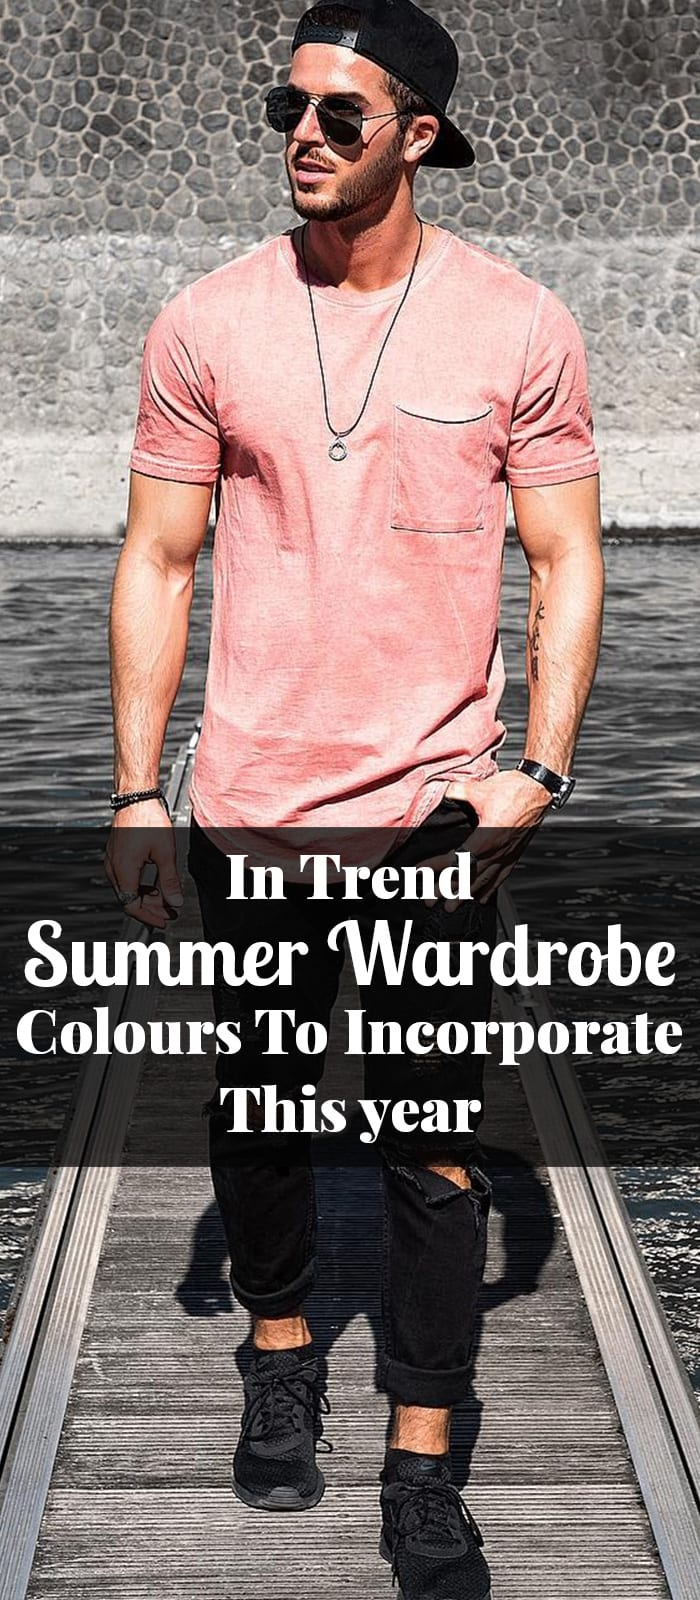 In Trend Summer Wardrobe Colours To Incorporate This year